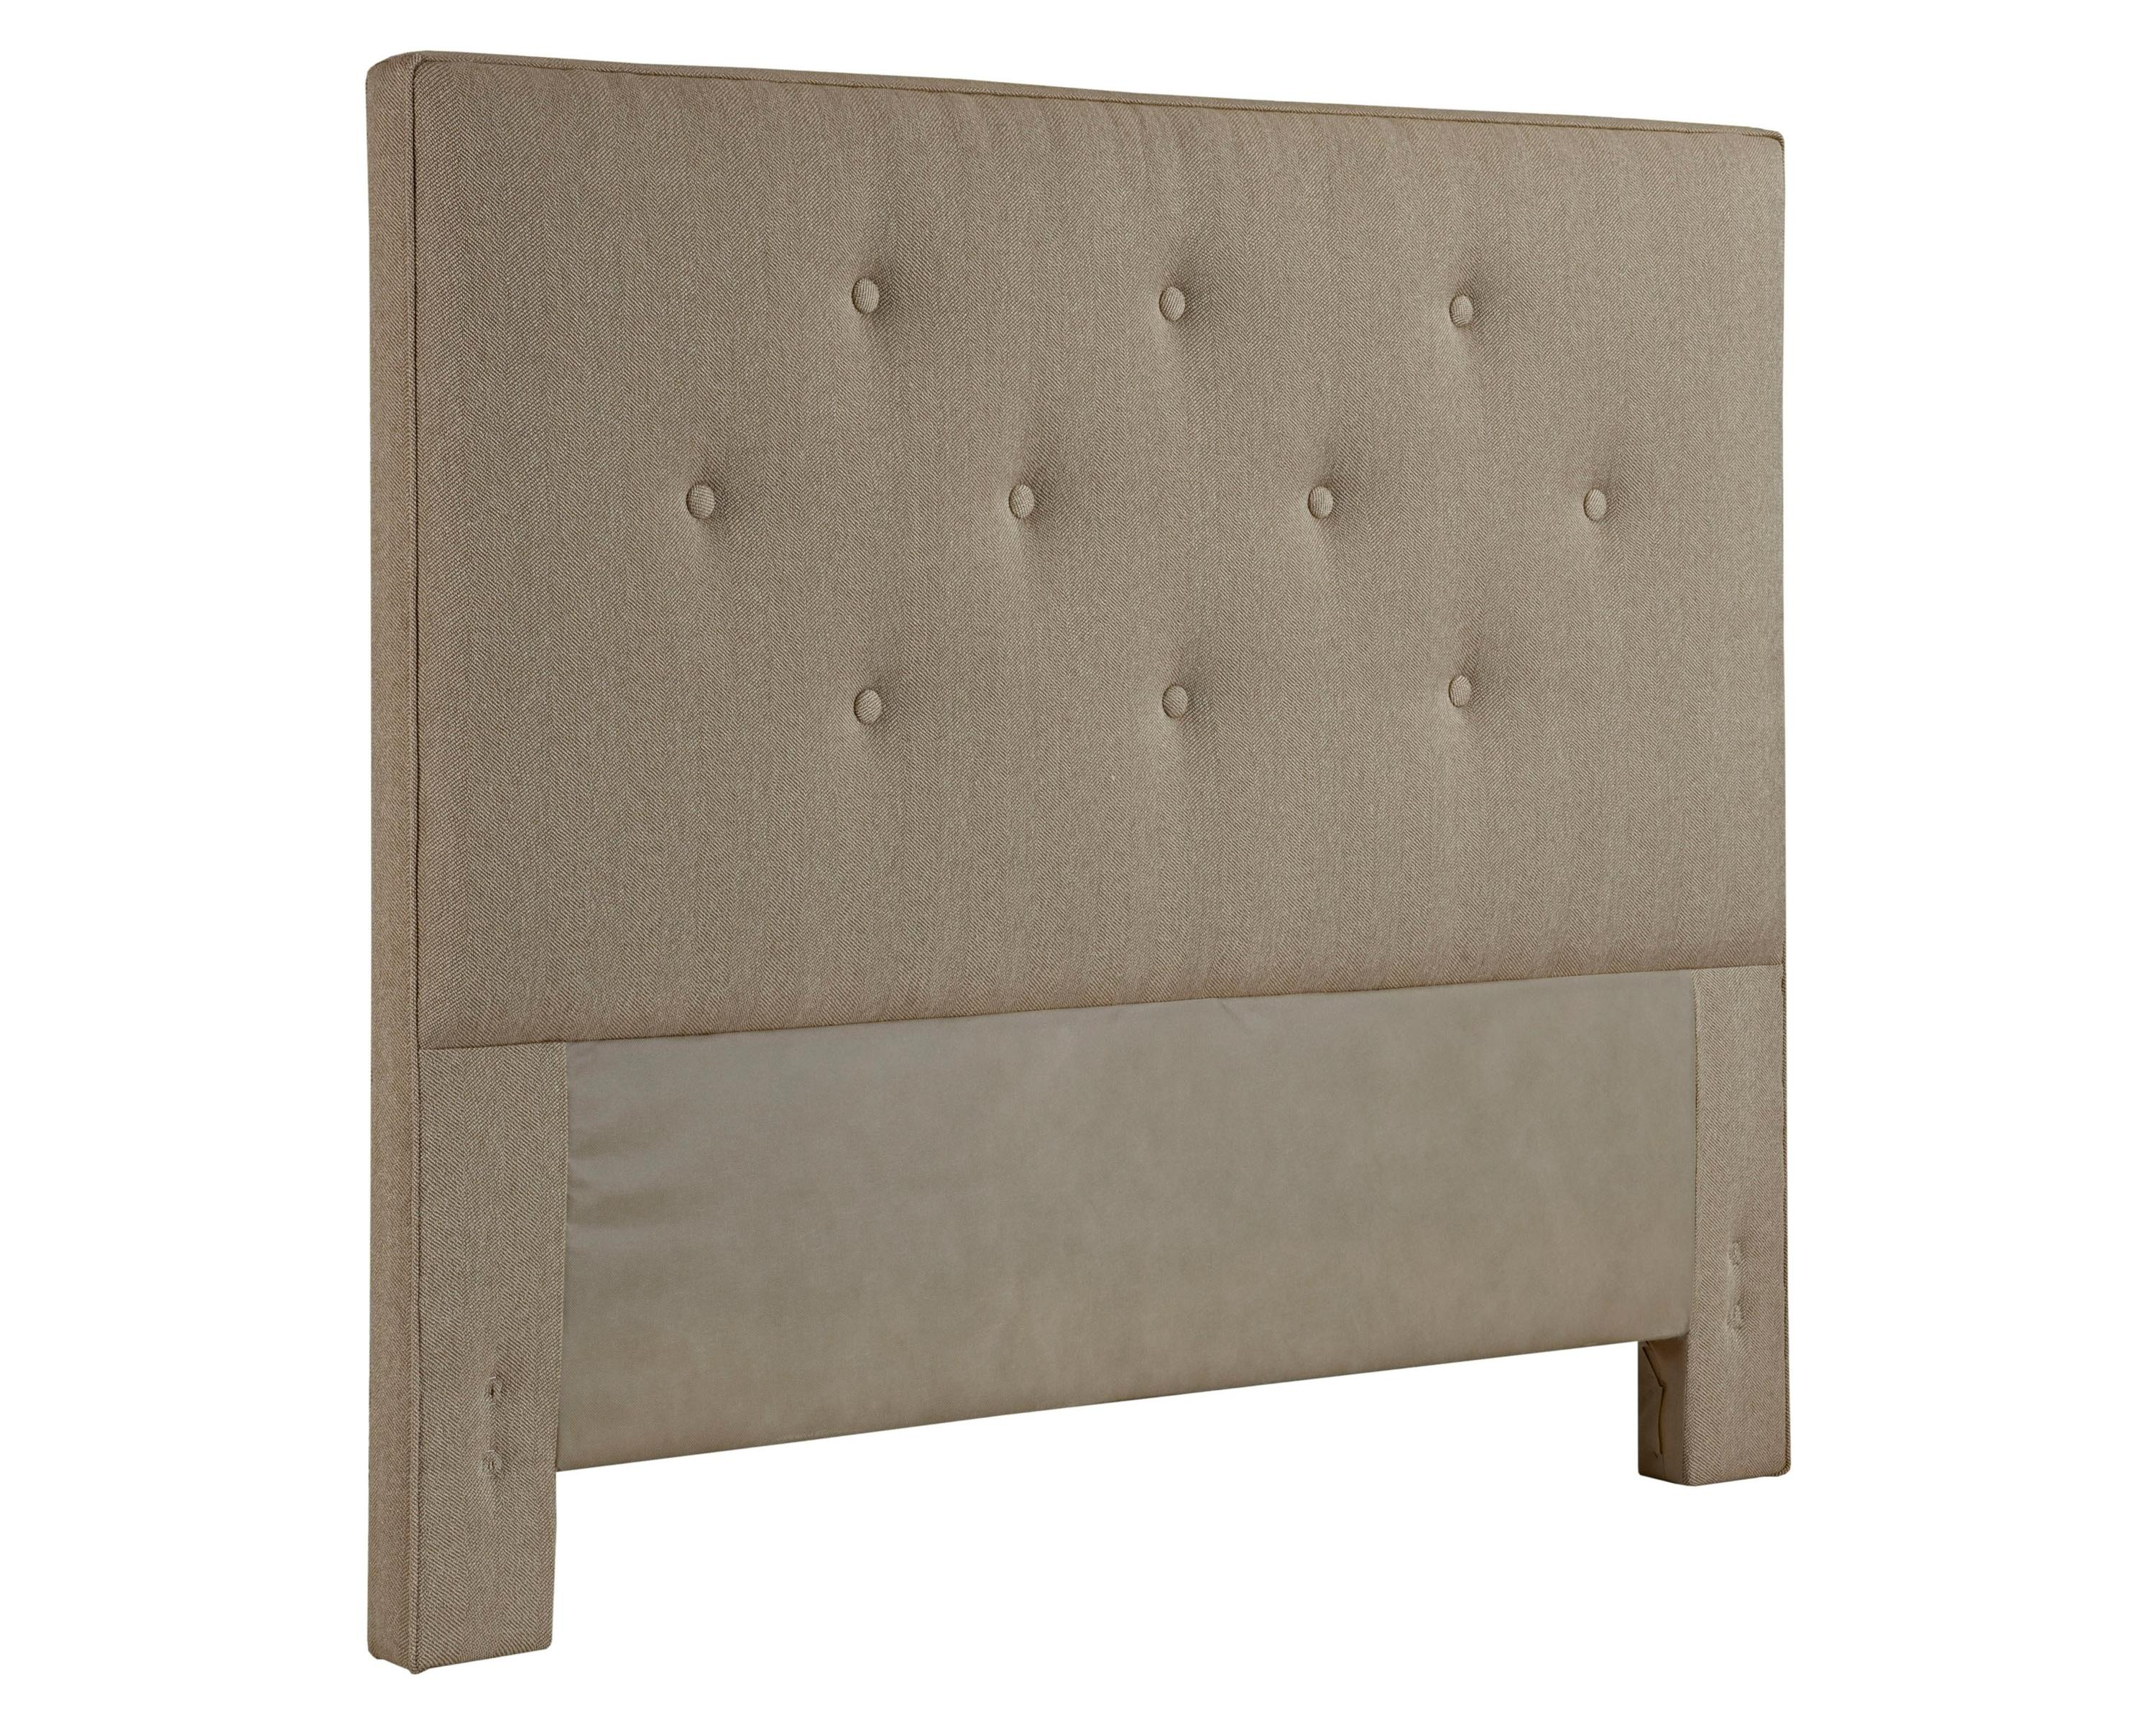 Broyhill furniture upholstered headboards sterlyn queen for Queen size headboard